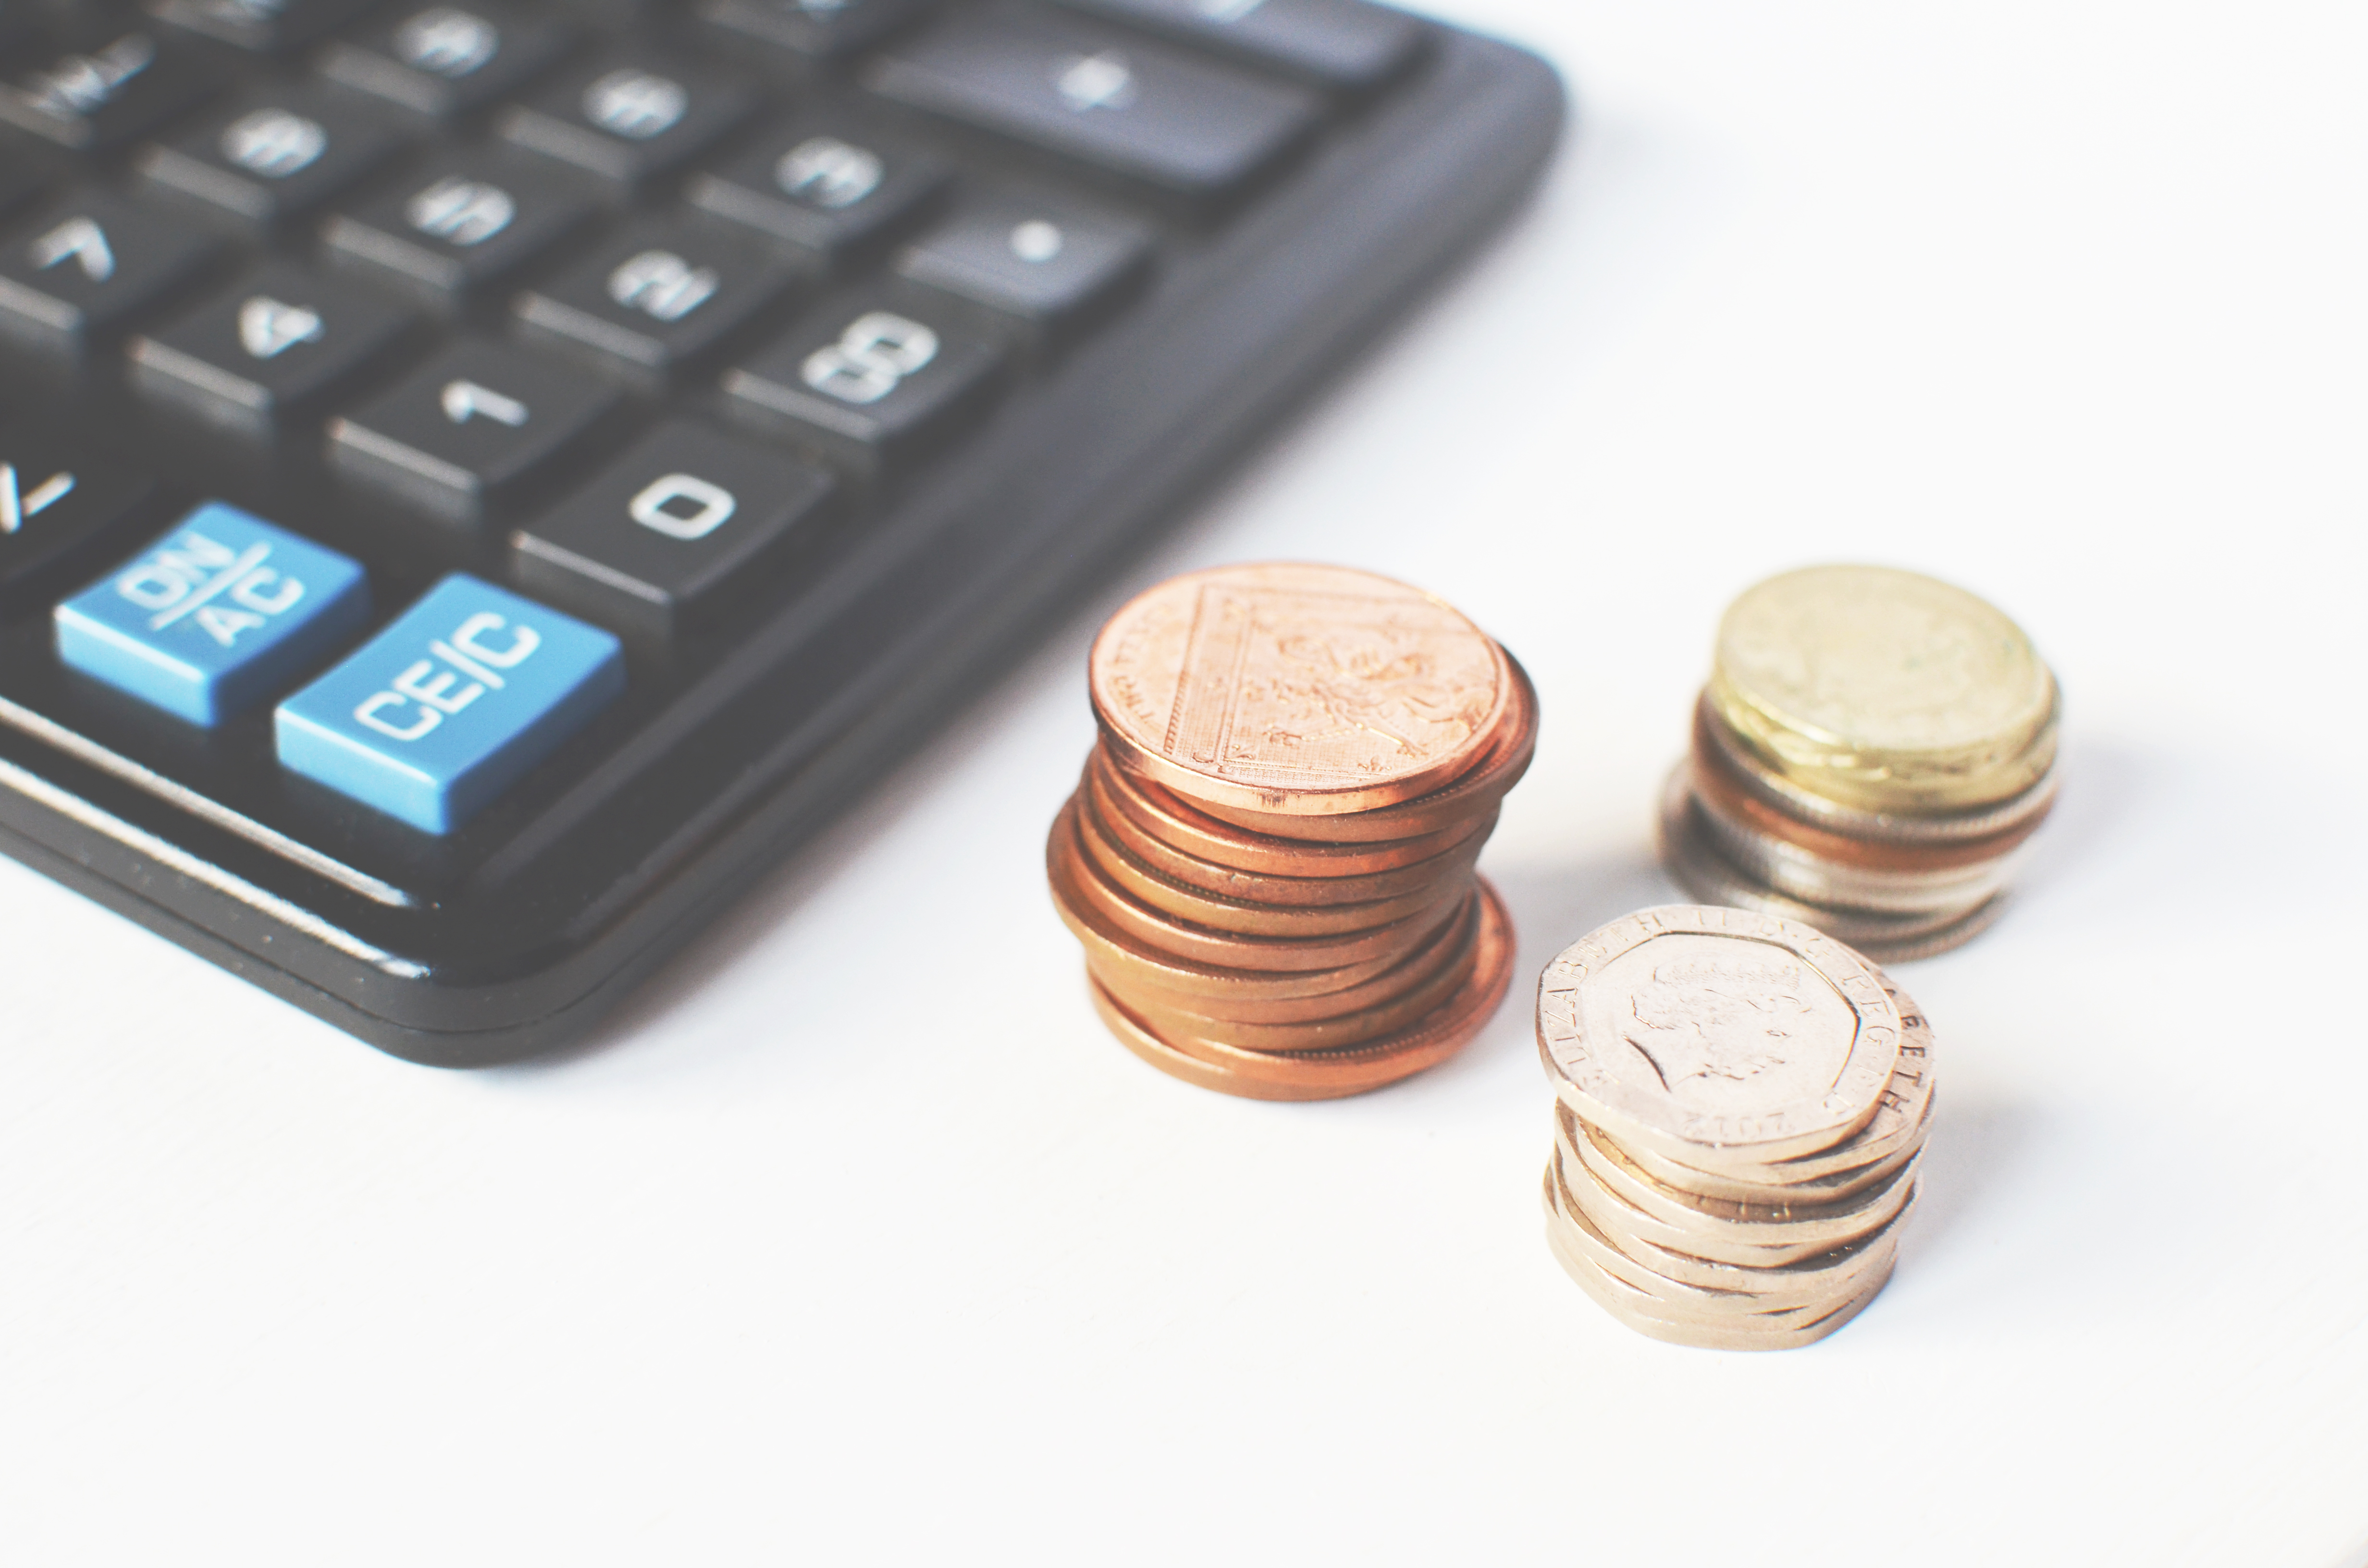 numbers-money-calculating-calculation